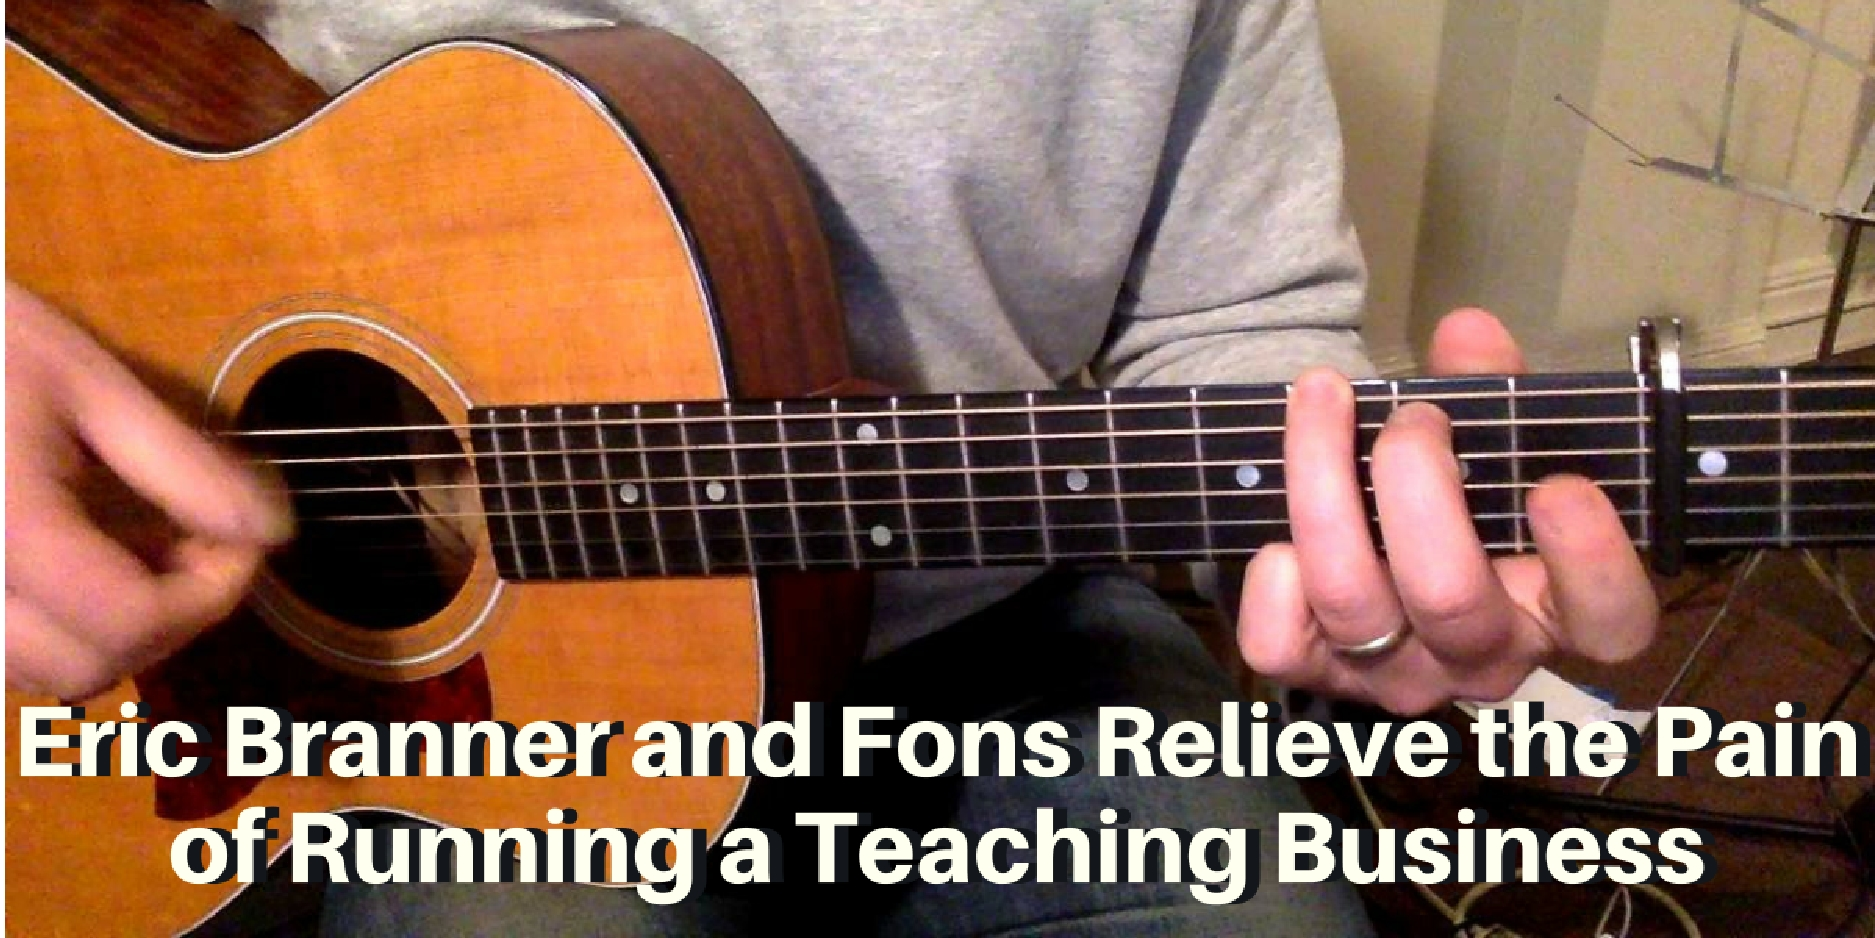 Eric Branner and Fons Relieve the Pain of Running a Teaching Business